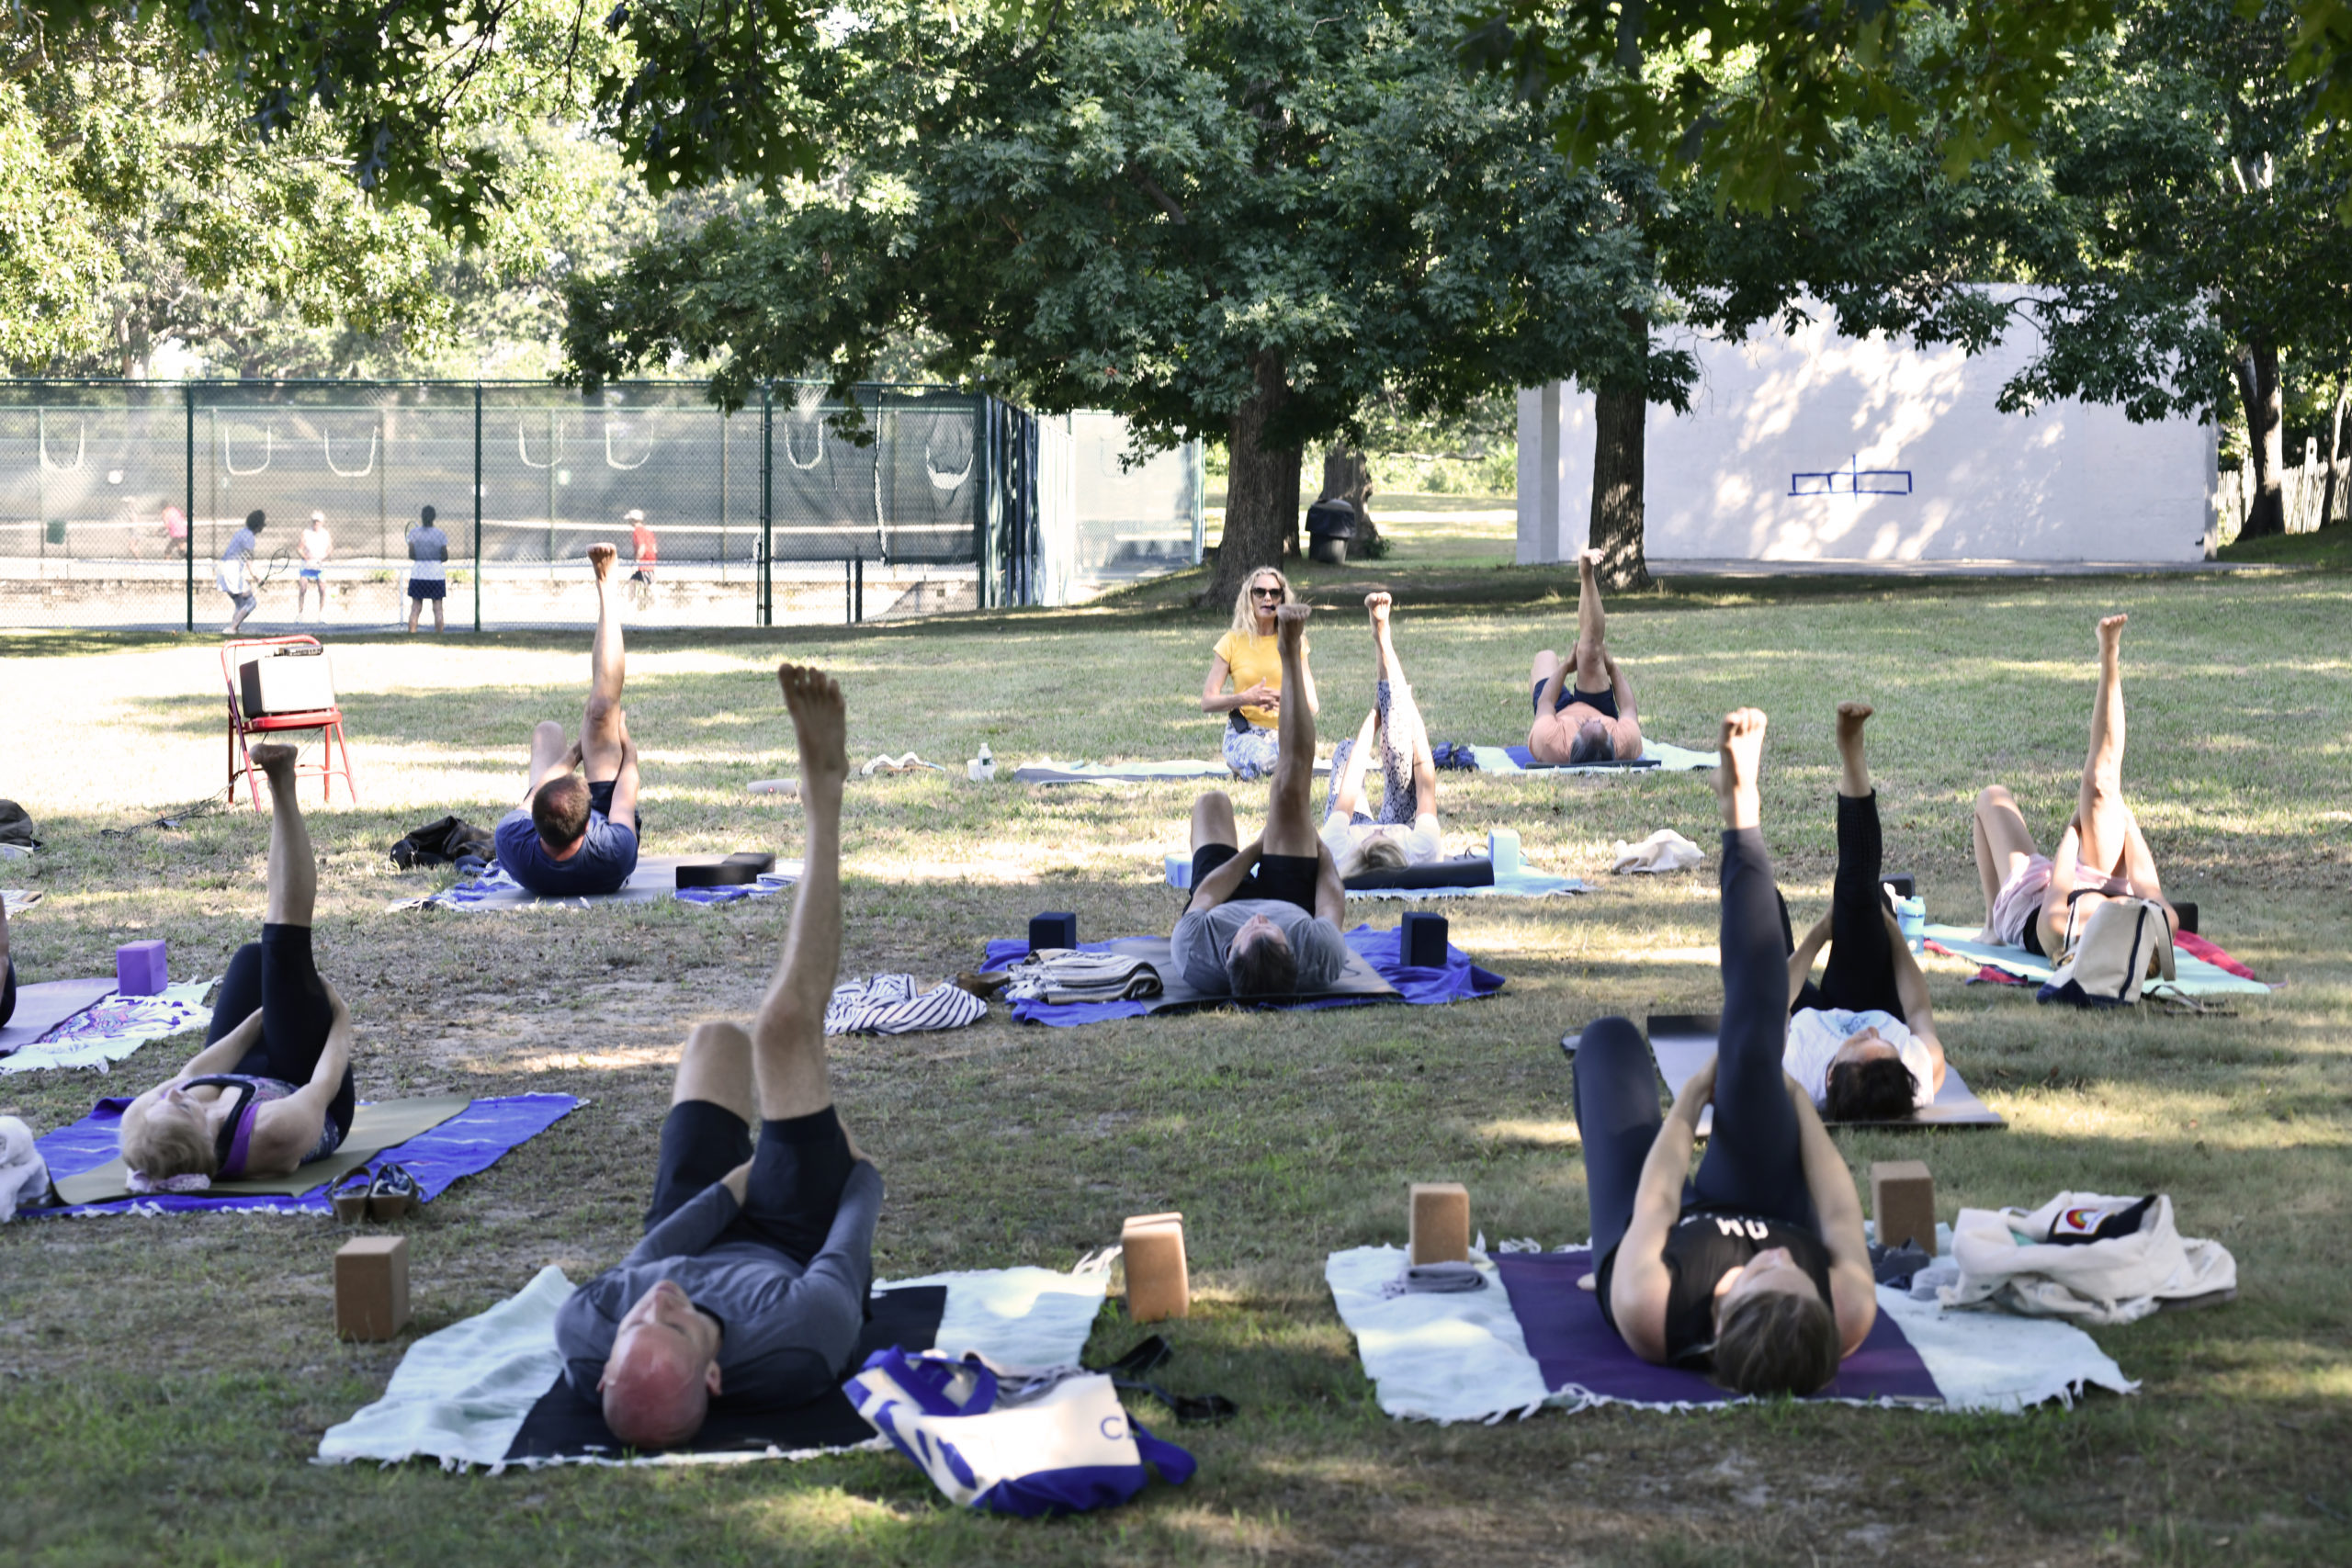 Yoga Shanti, the Sag-Harbor-based yoga studio, is holding daily outdoor yoga classes from 9 to 10 a.m., rain or shine, in Mashashimuet Park.     DANA SHAW